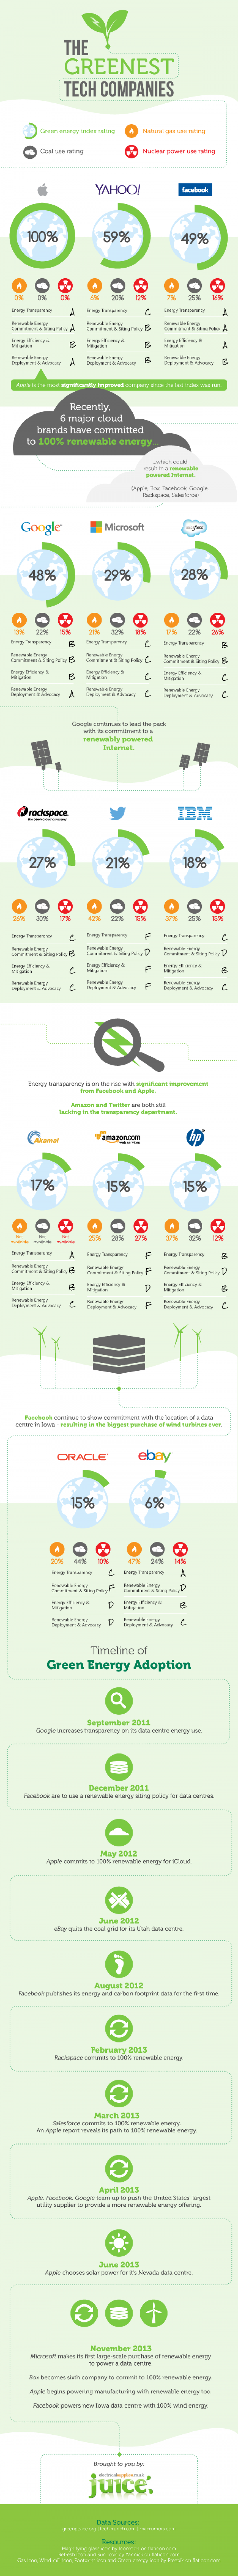 The Greenest Tech Companies Infographic